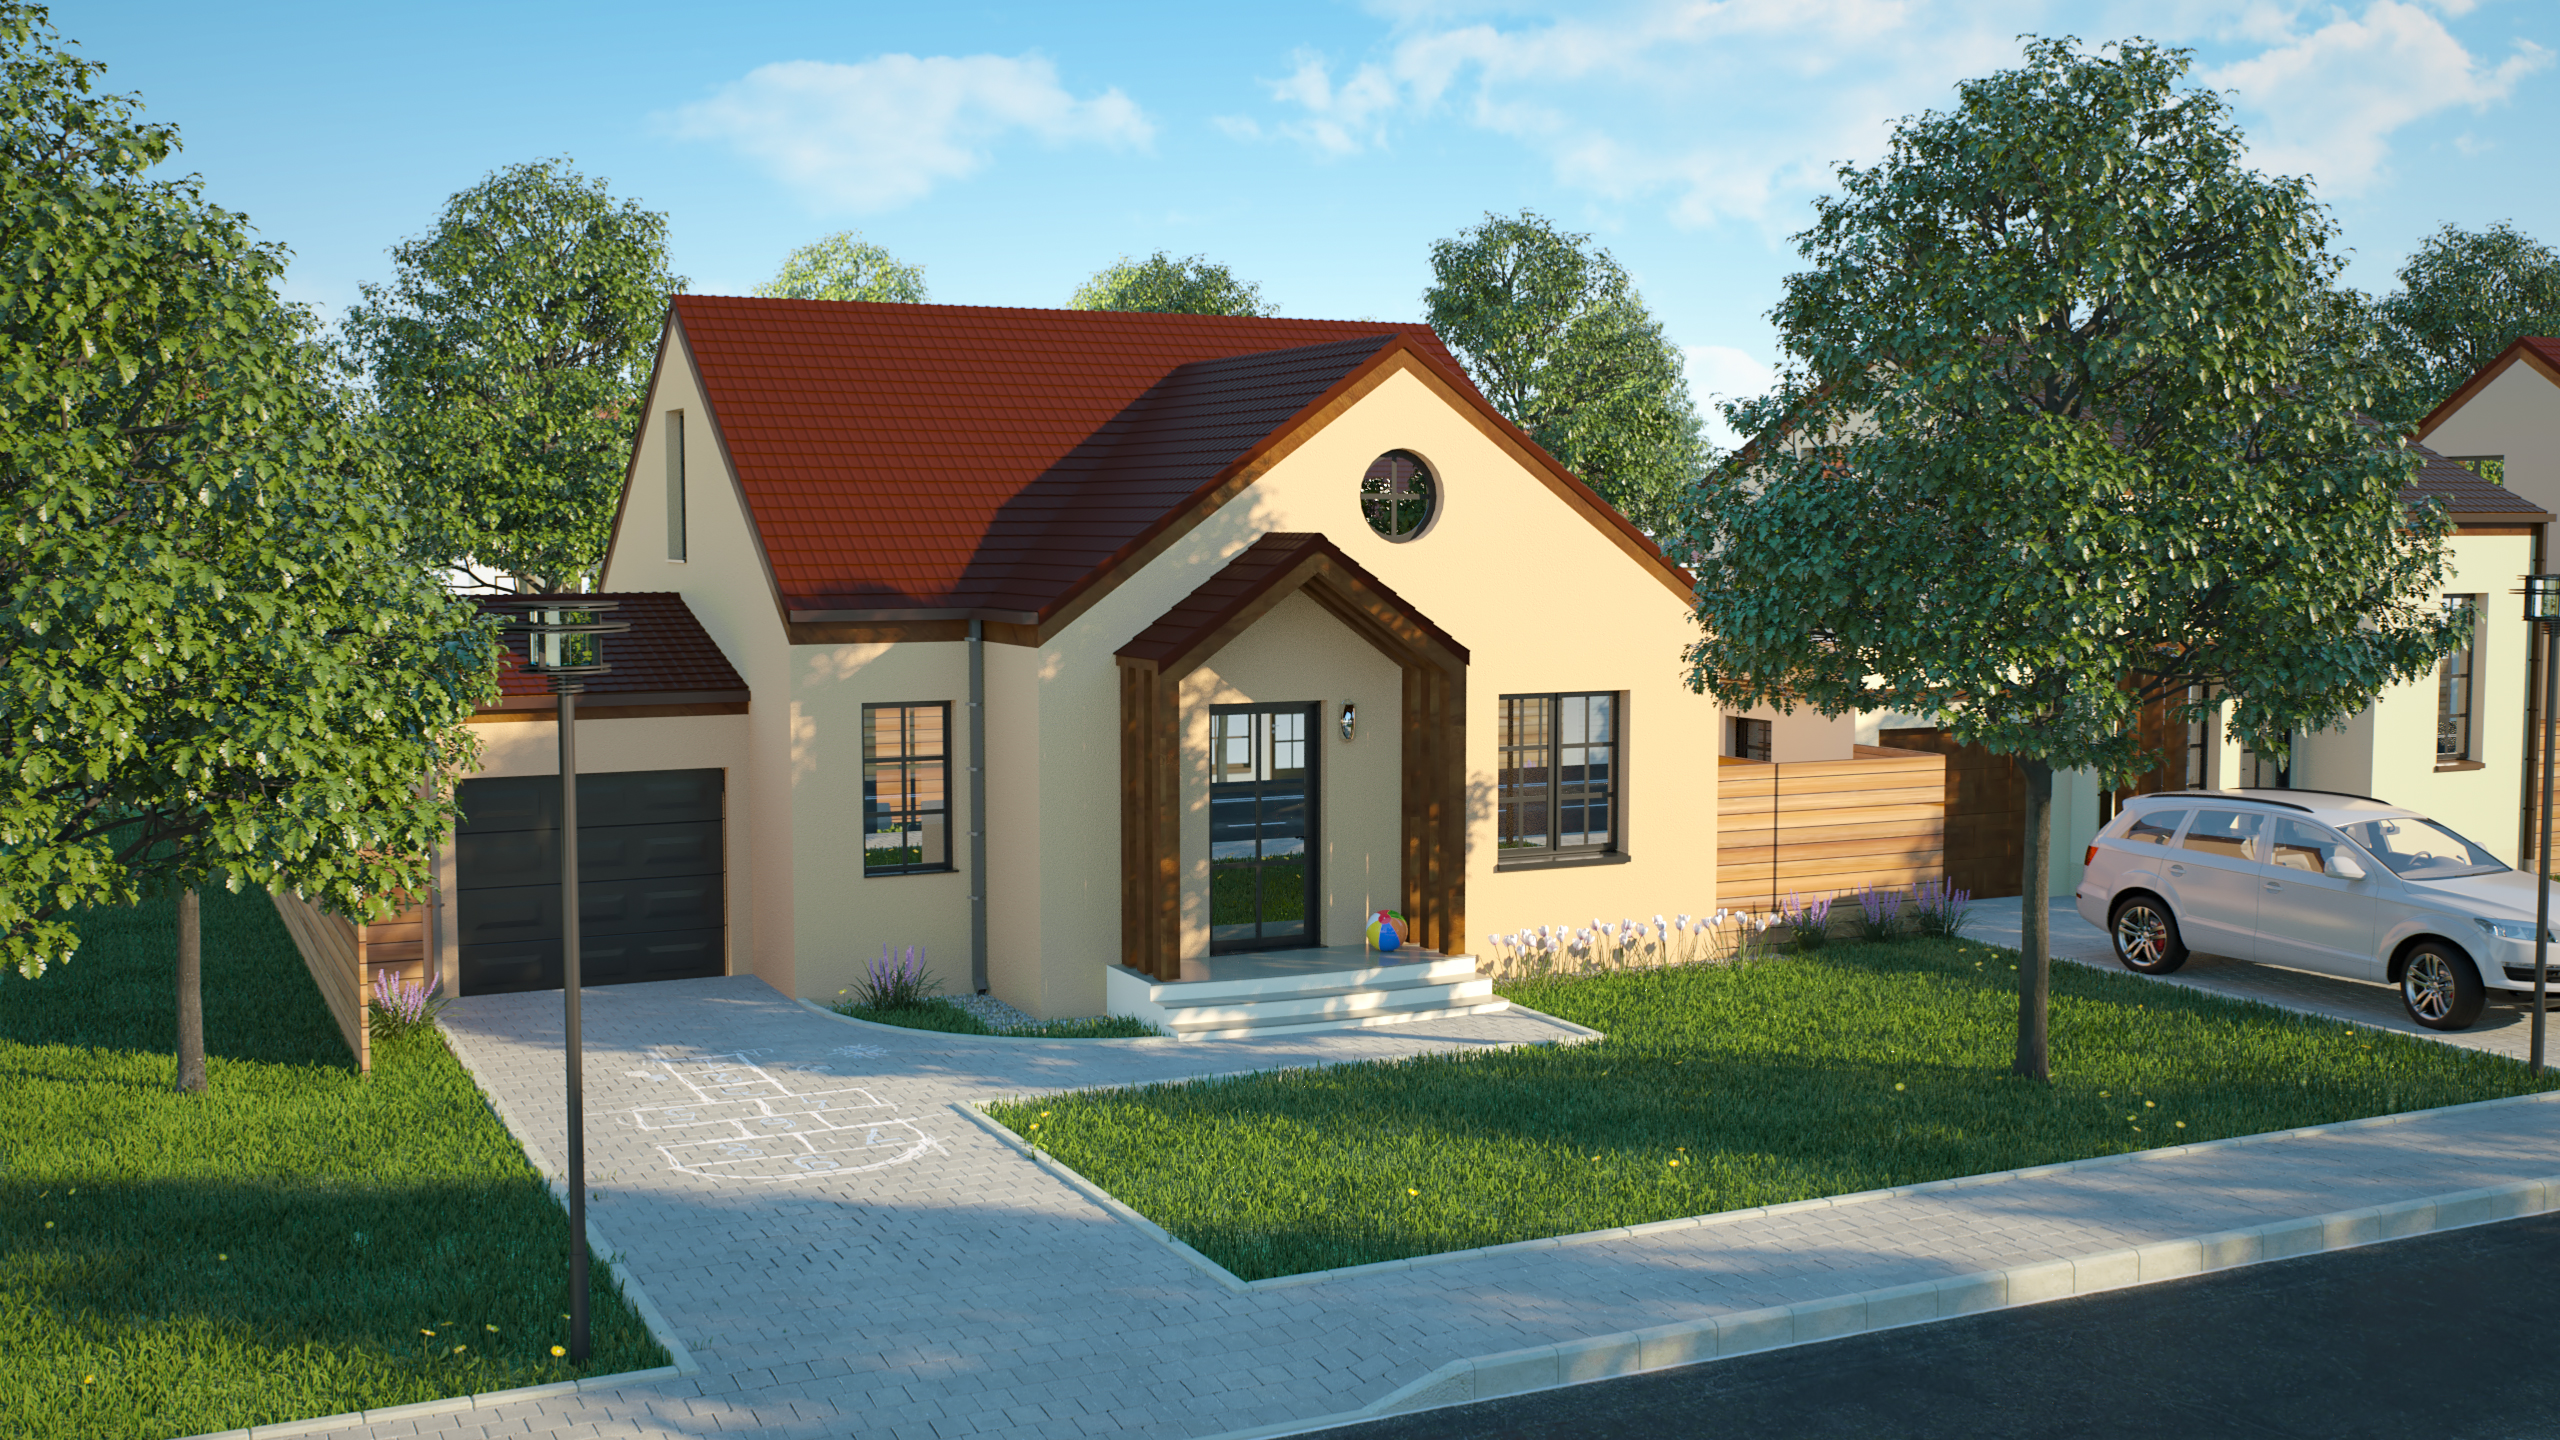 Villa for sale recommended by Westfield Arad